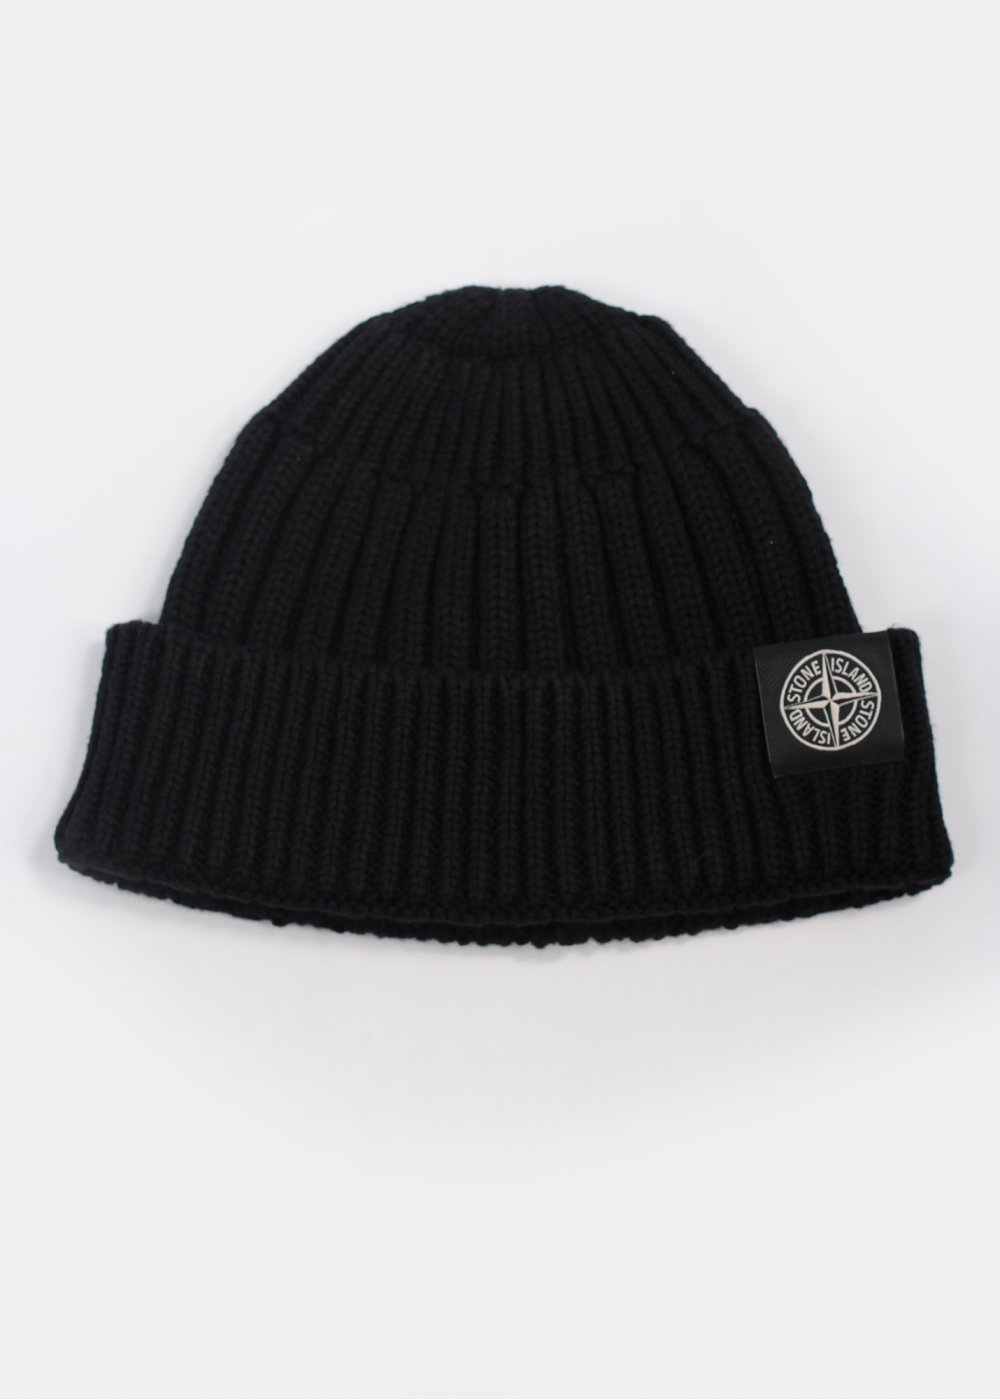 Logo Ribbed Beanie Hat - Black 7b461734038